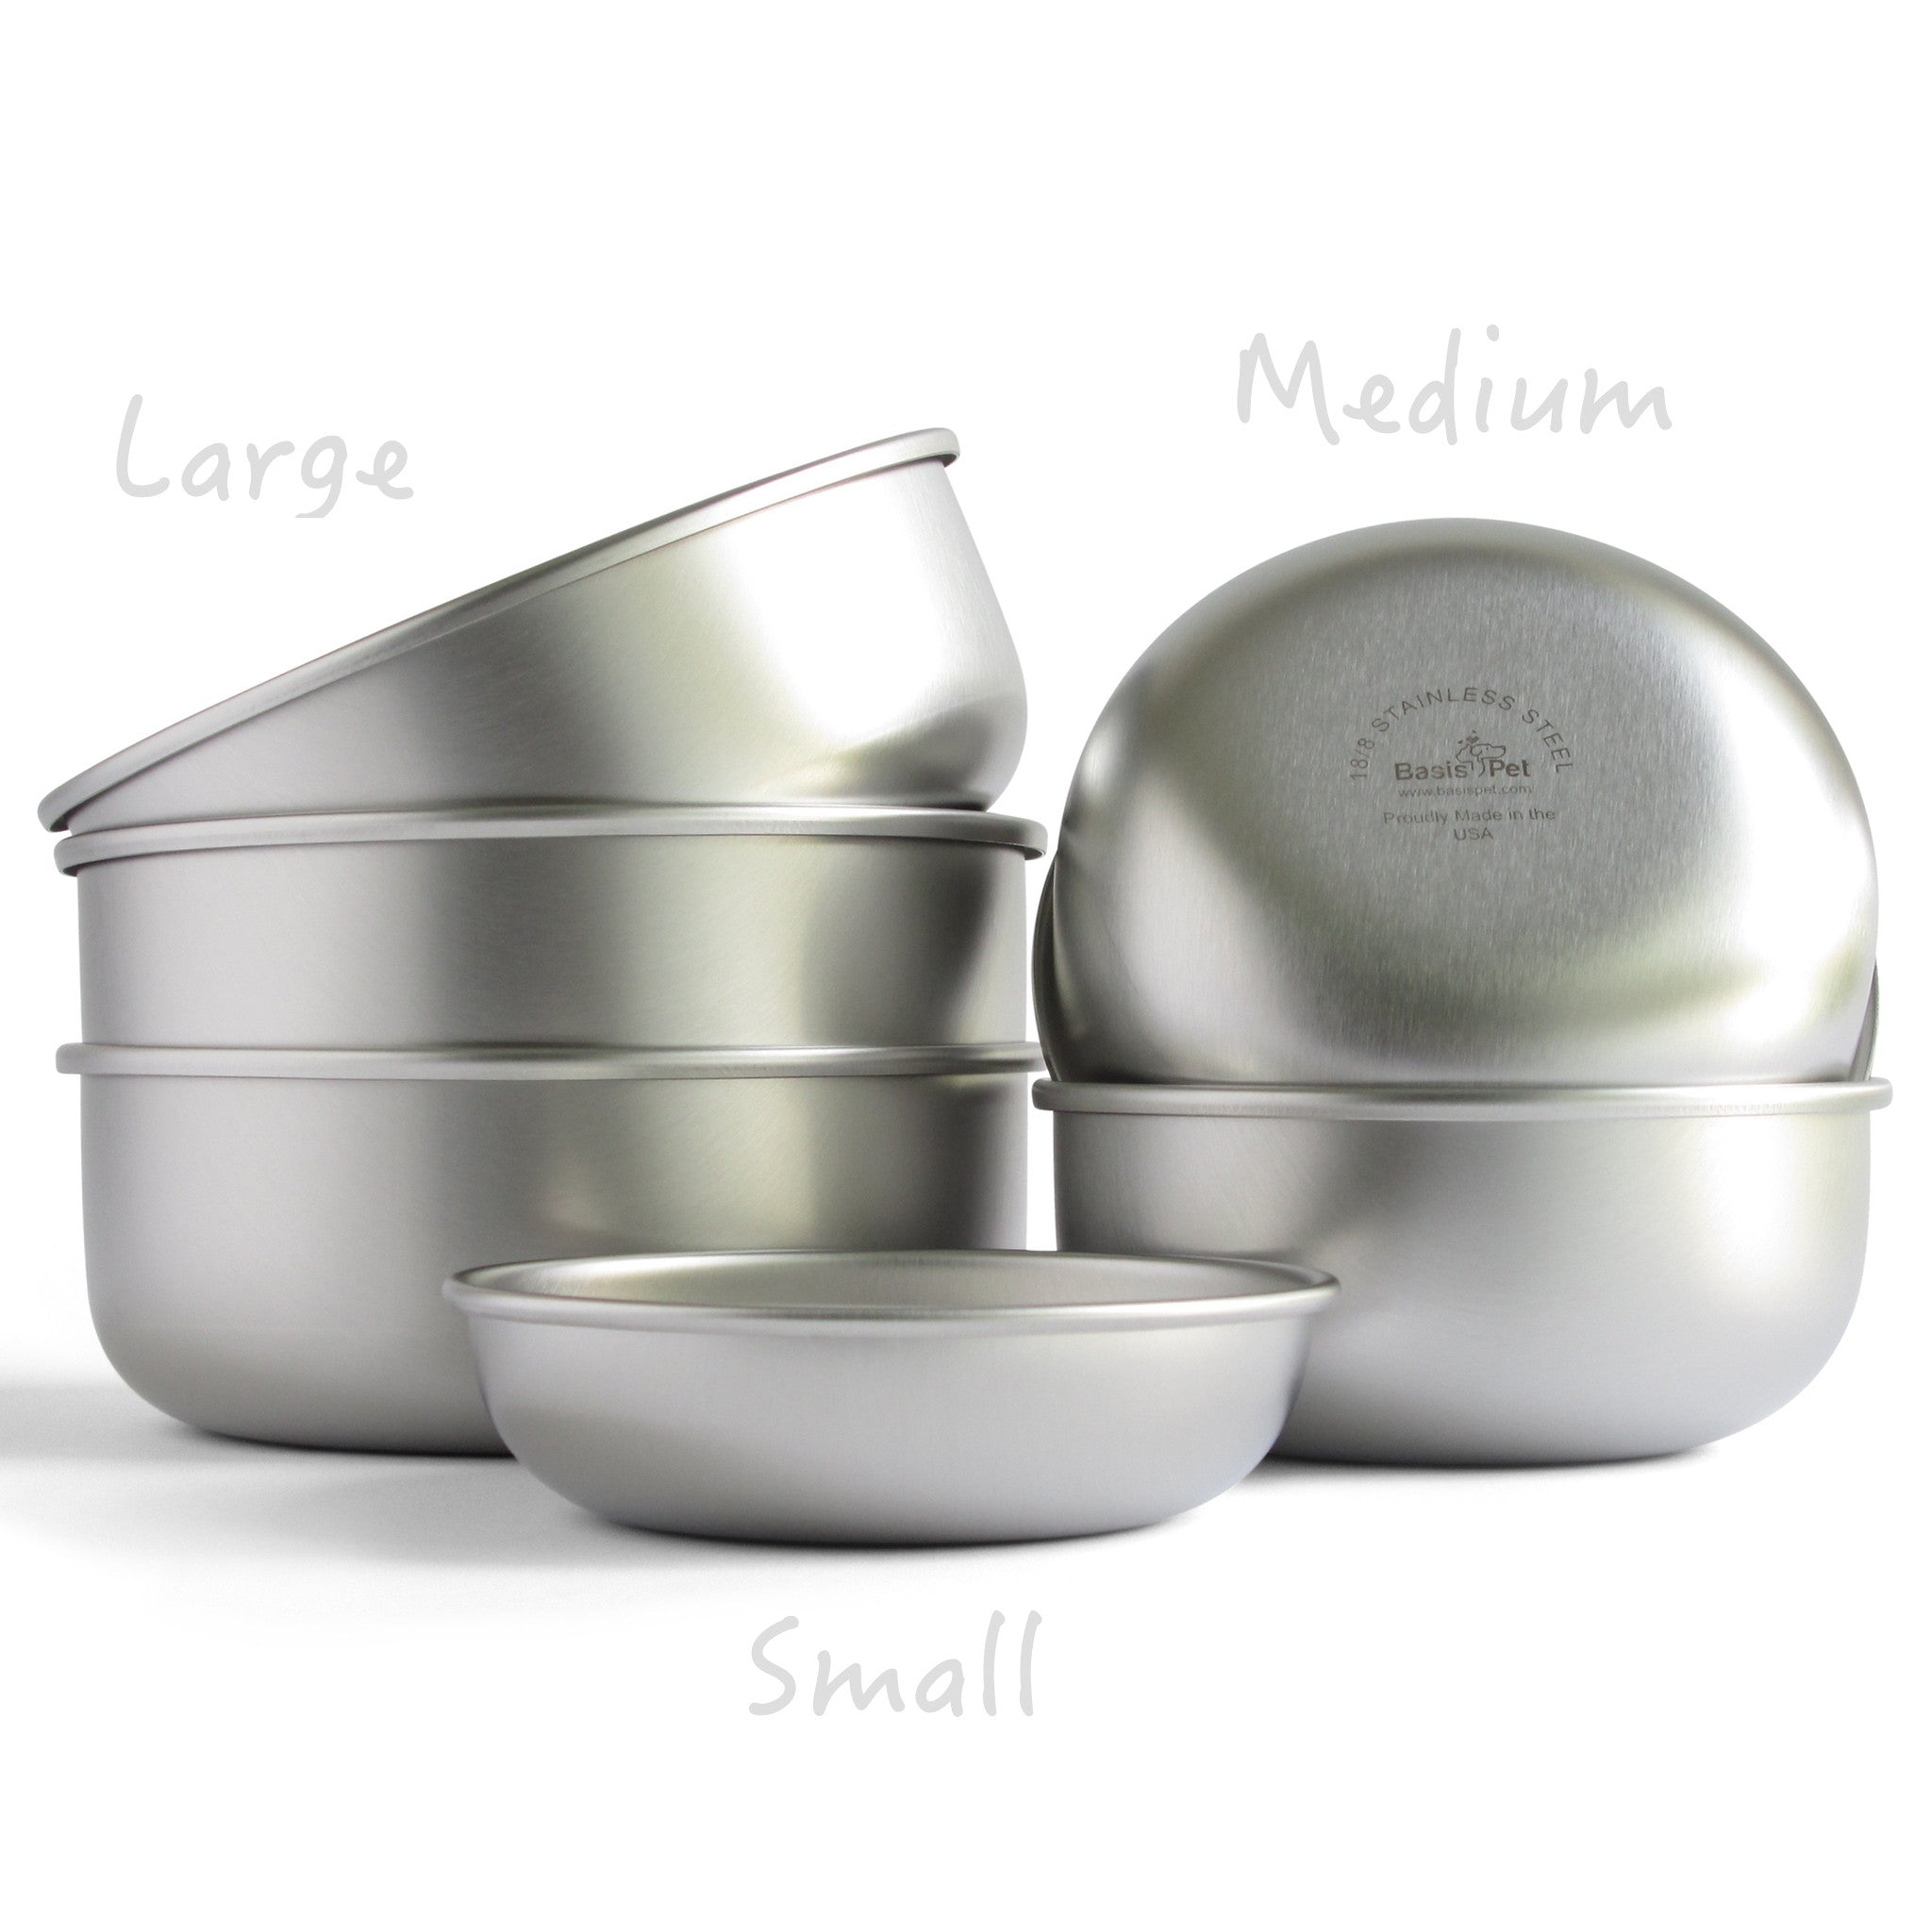 Stainless Steel Dog Bowls Made In Usa Basis Pet